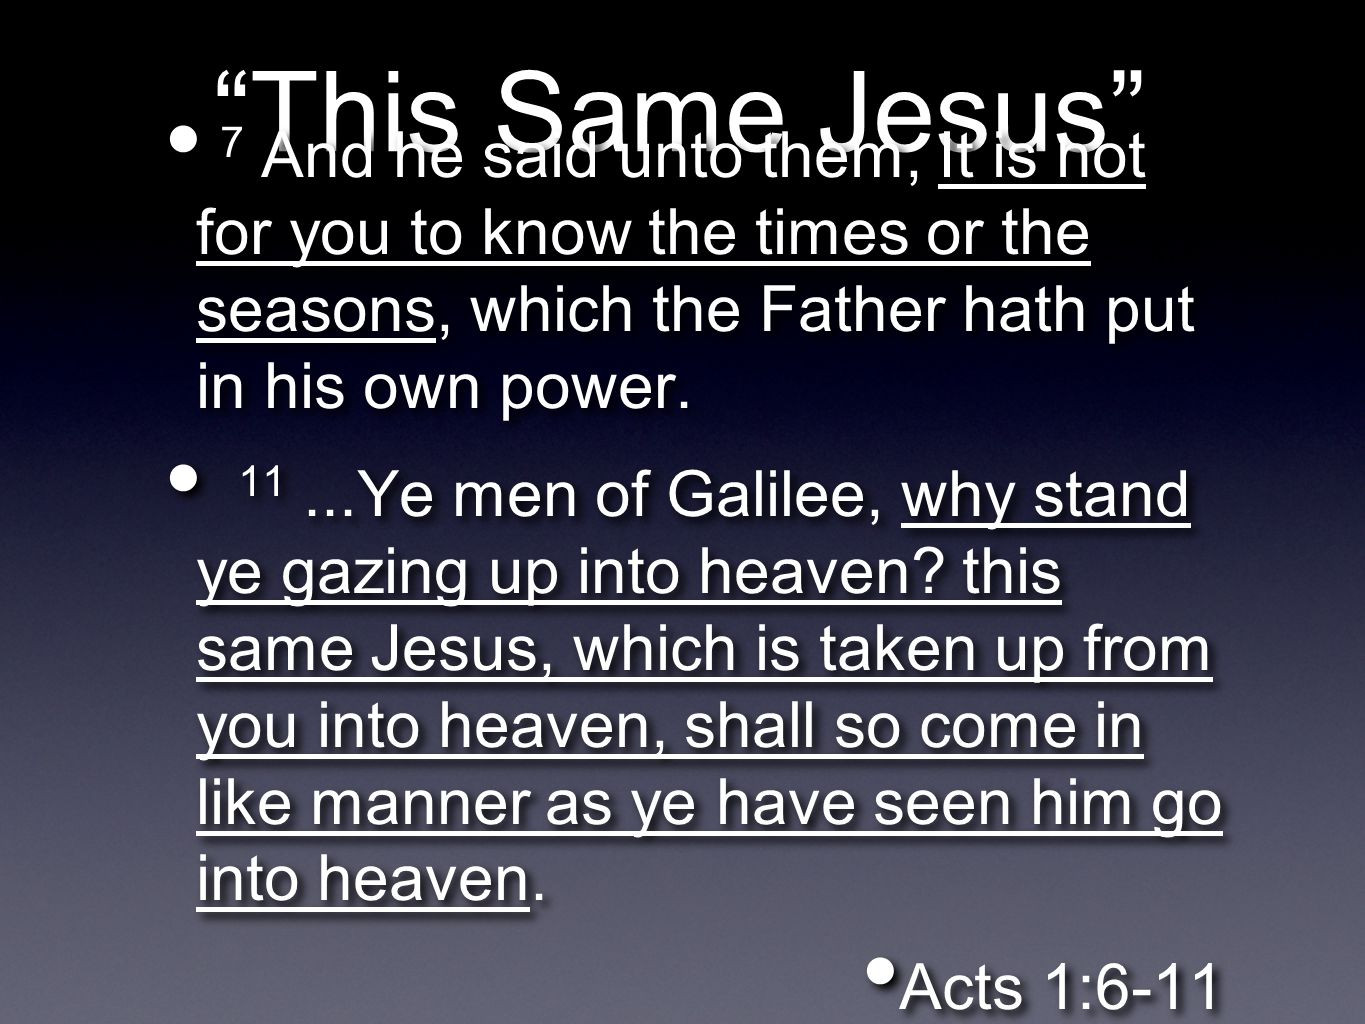 This Same Jesus 7 And he said unto them, It is not for you to know the times or the seasons, which the Father hath put in his own power.